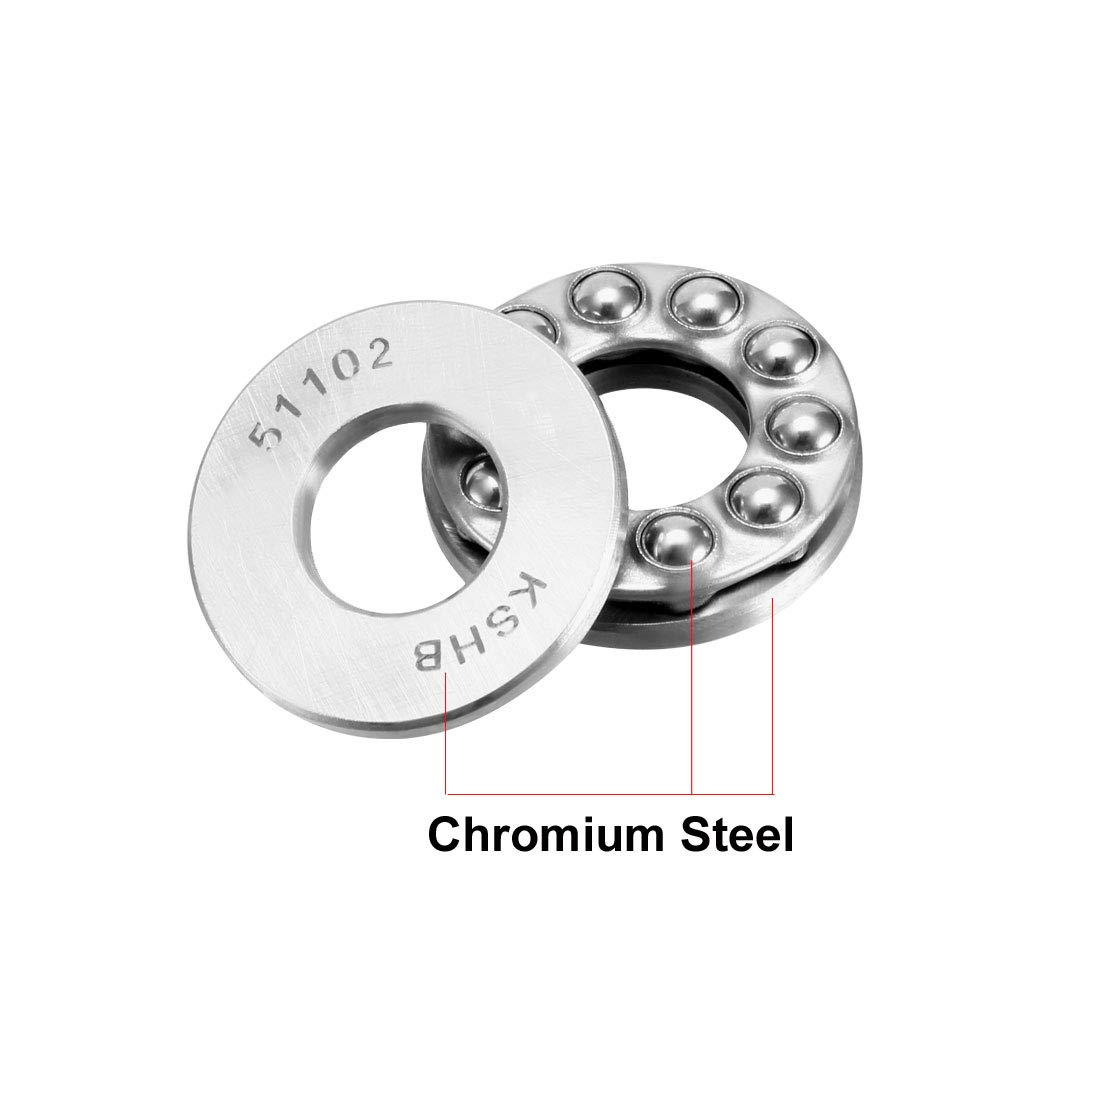 Pack of 2 sourcing map 51102 Single Direction Thrust Ball Bearings 15mm x 28mm x 9mm Chrome Steel